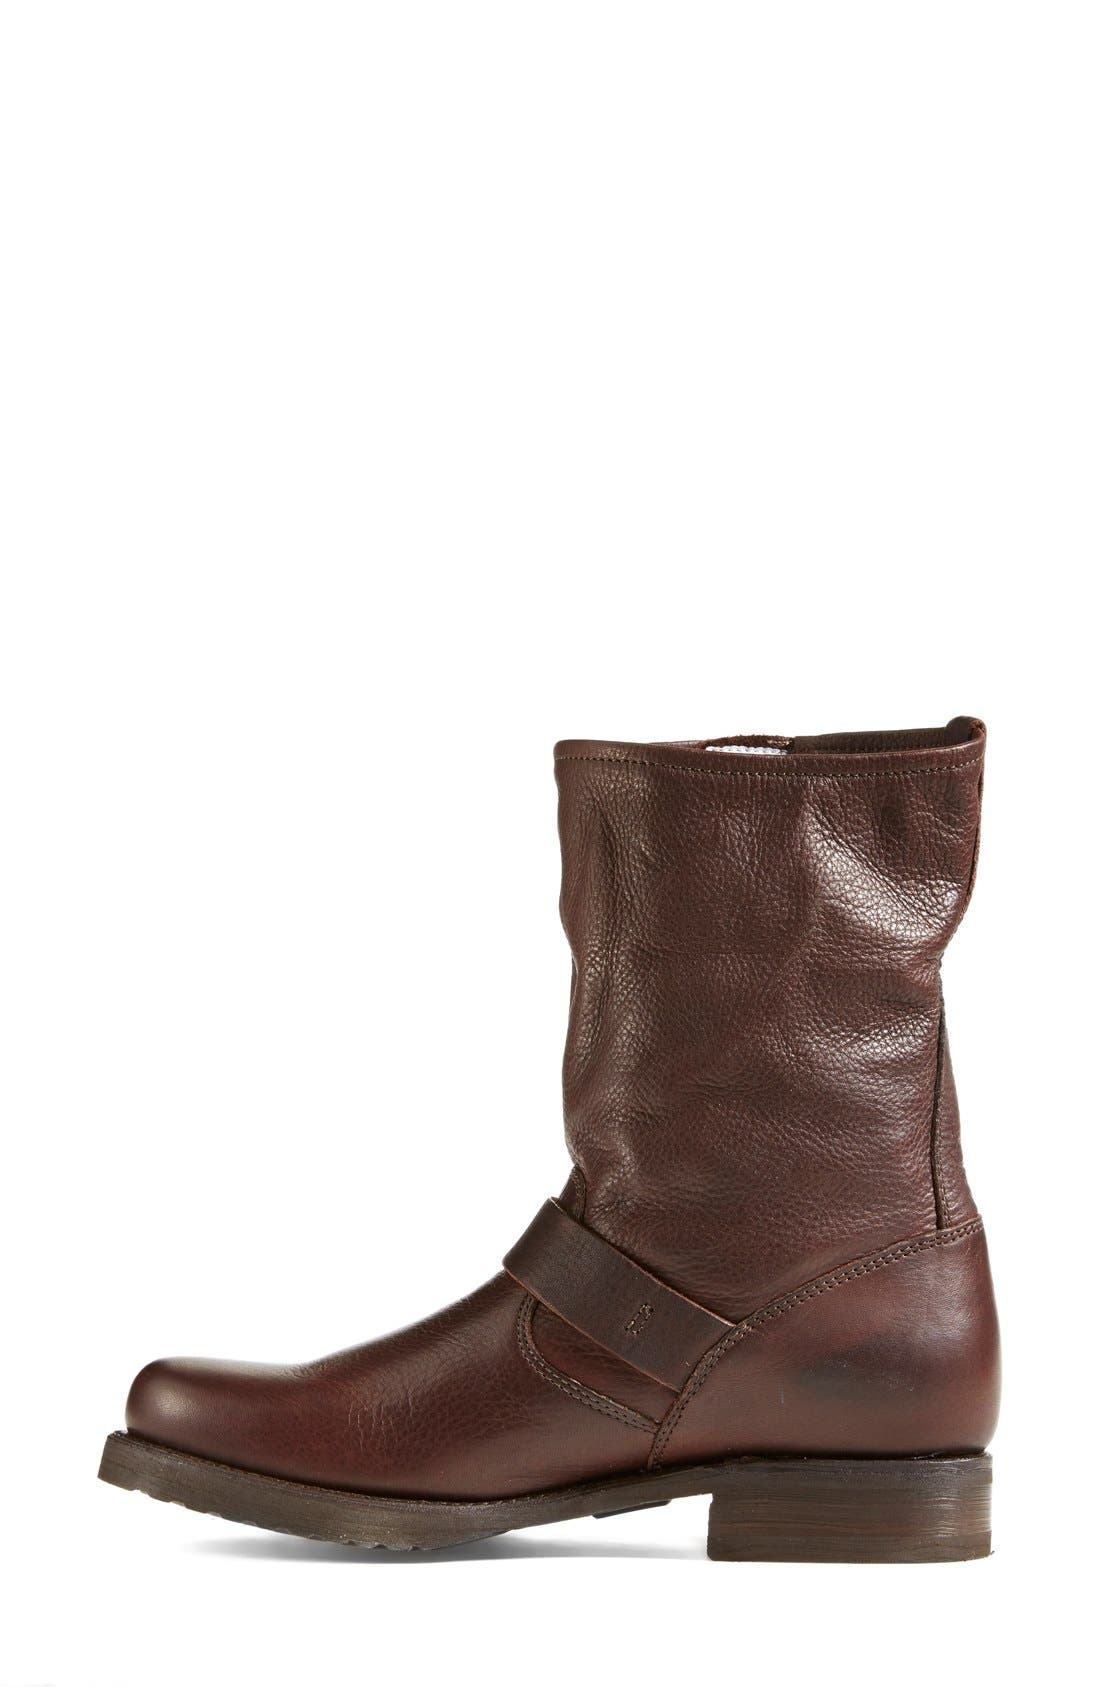 'Veronica Short' Slouchy Boot,                             Alternate thumbnail 4, color,                             Dark Brown Leather